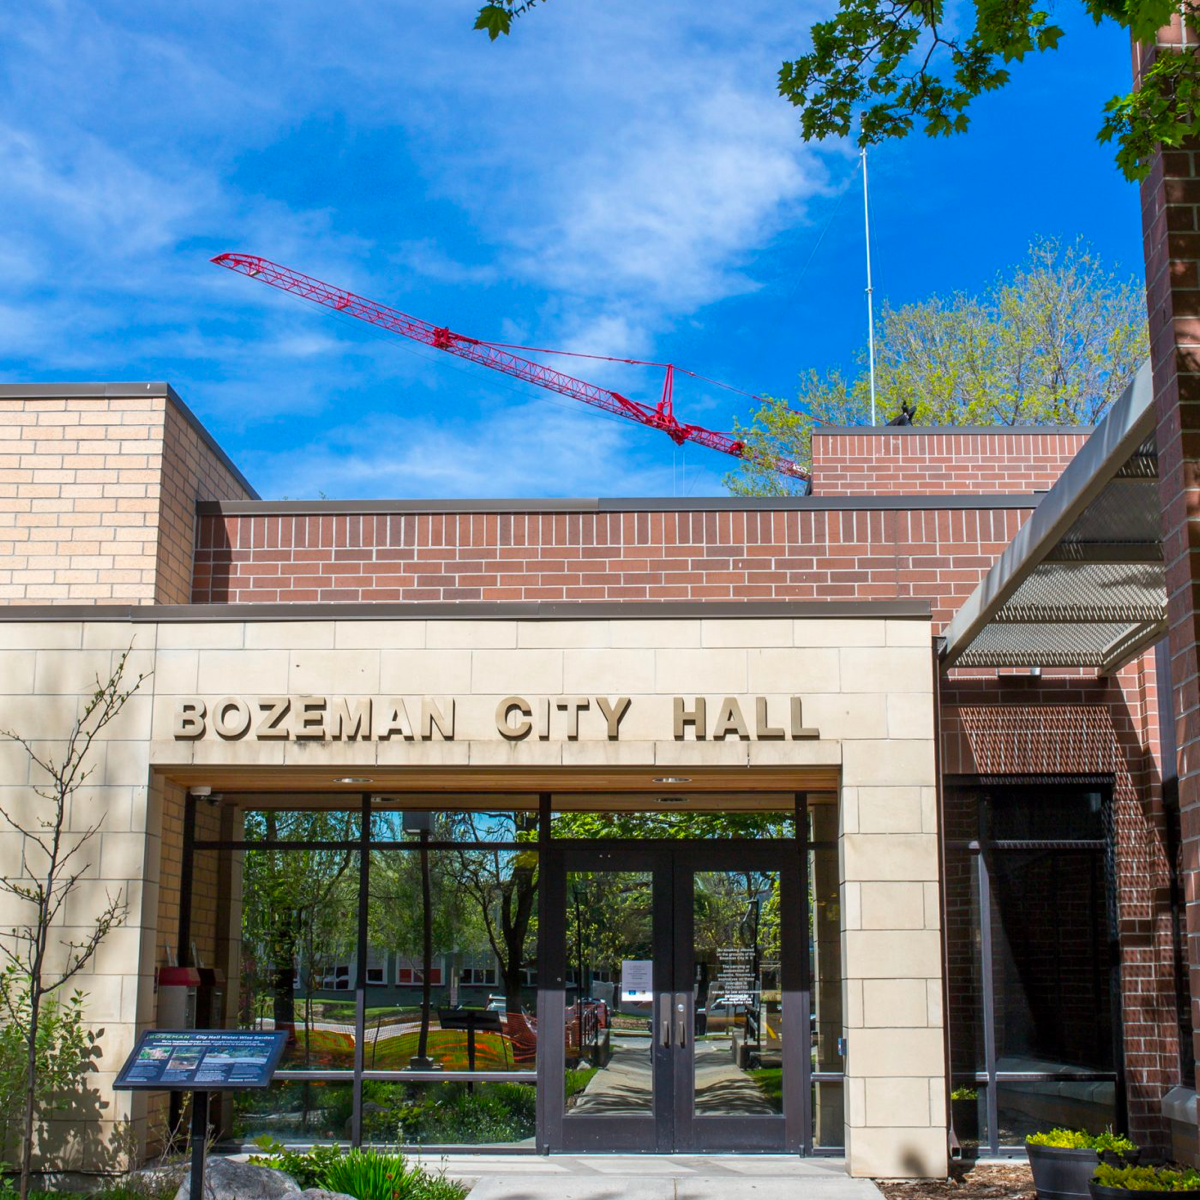 A photo of Bozeman City Hall with a large red crane rising above in the background.